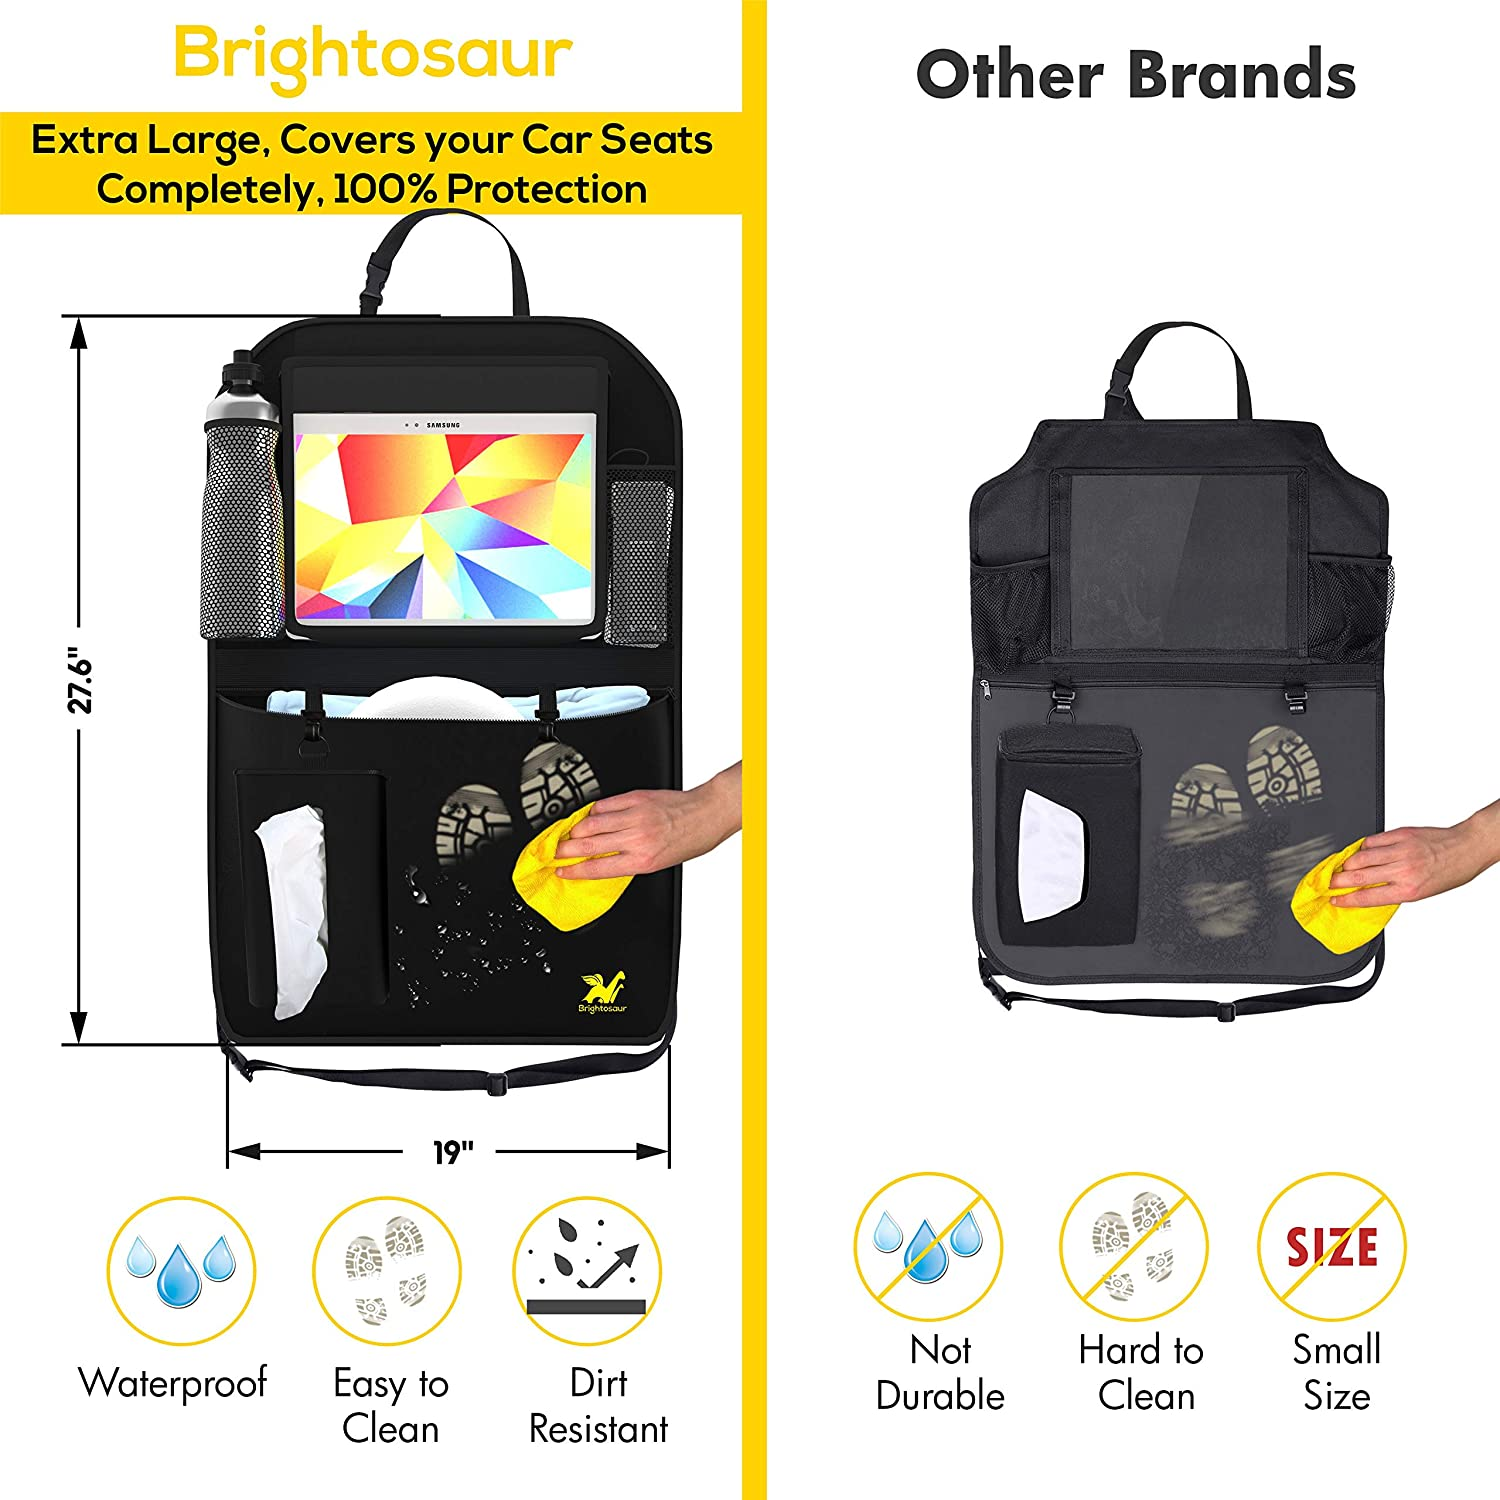 Kick Mats Back Seat Protector Backseat Car Organizer 2 Pack XL Premium with Tablet Holder 12,Garbage Can,Tissue Holder by Brightosaur Car Seat Protector Kids Back Seat Organizer Car Seat Organizer